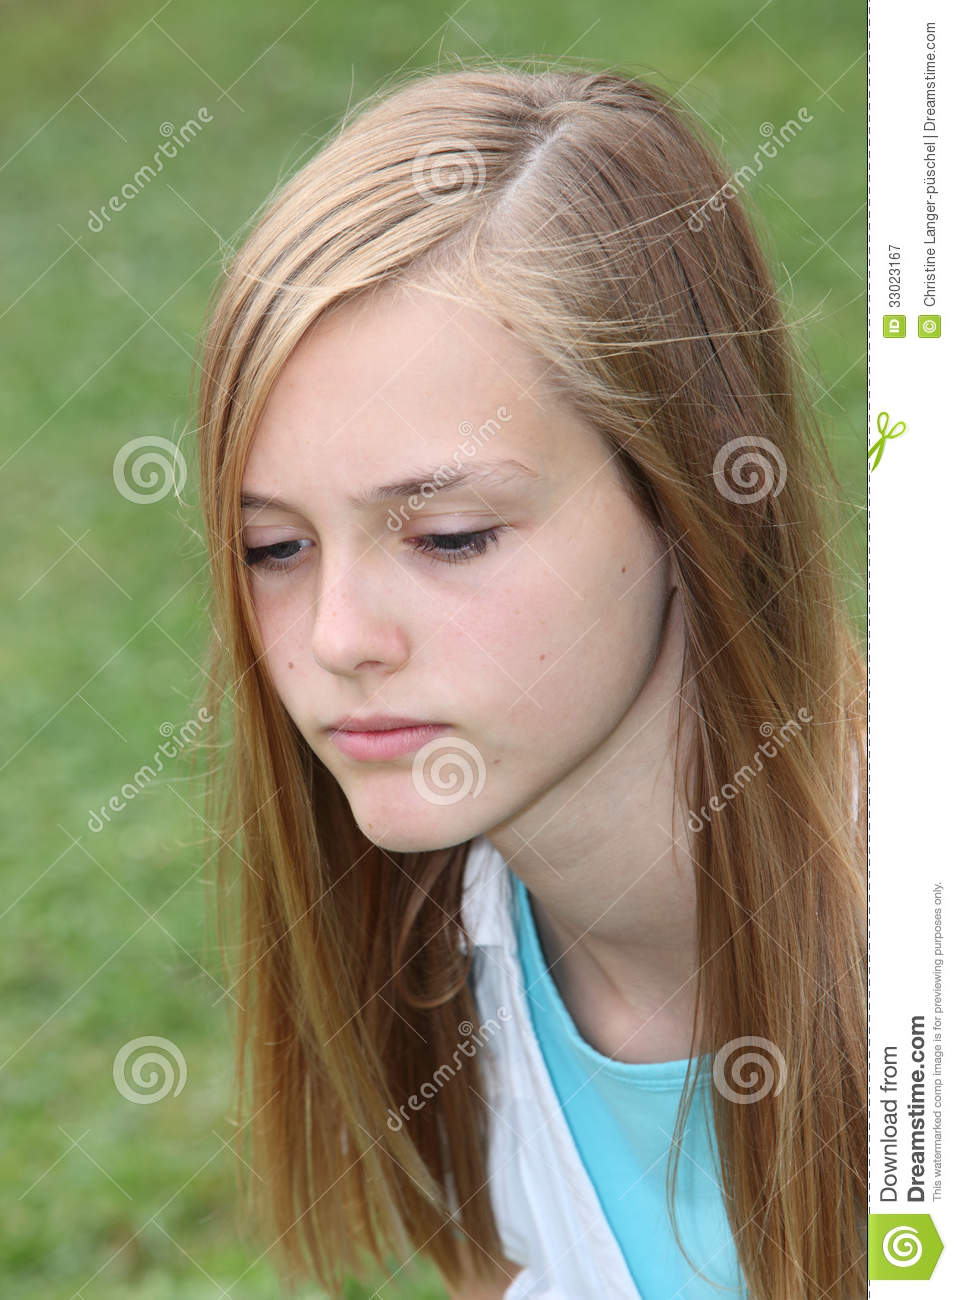 Thoughtful Sad Teenage Girl Royalty Free Stock Photography -3579